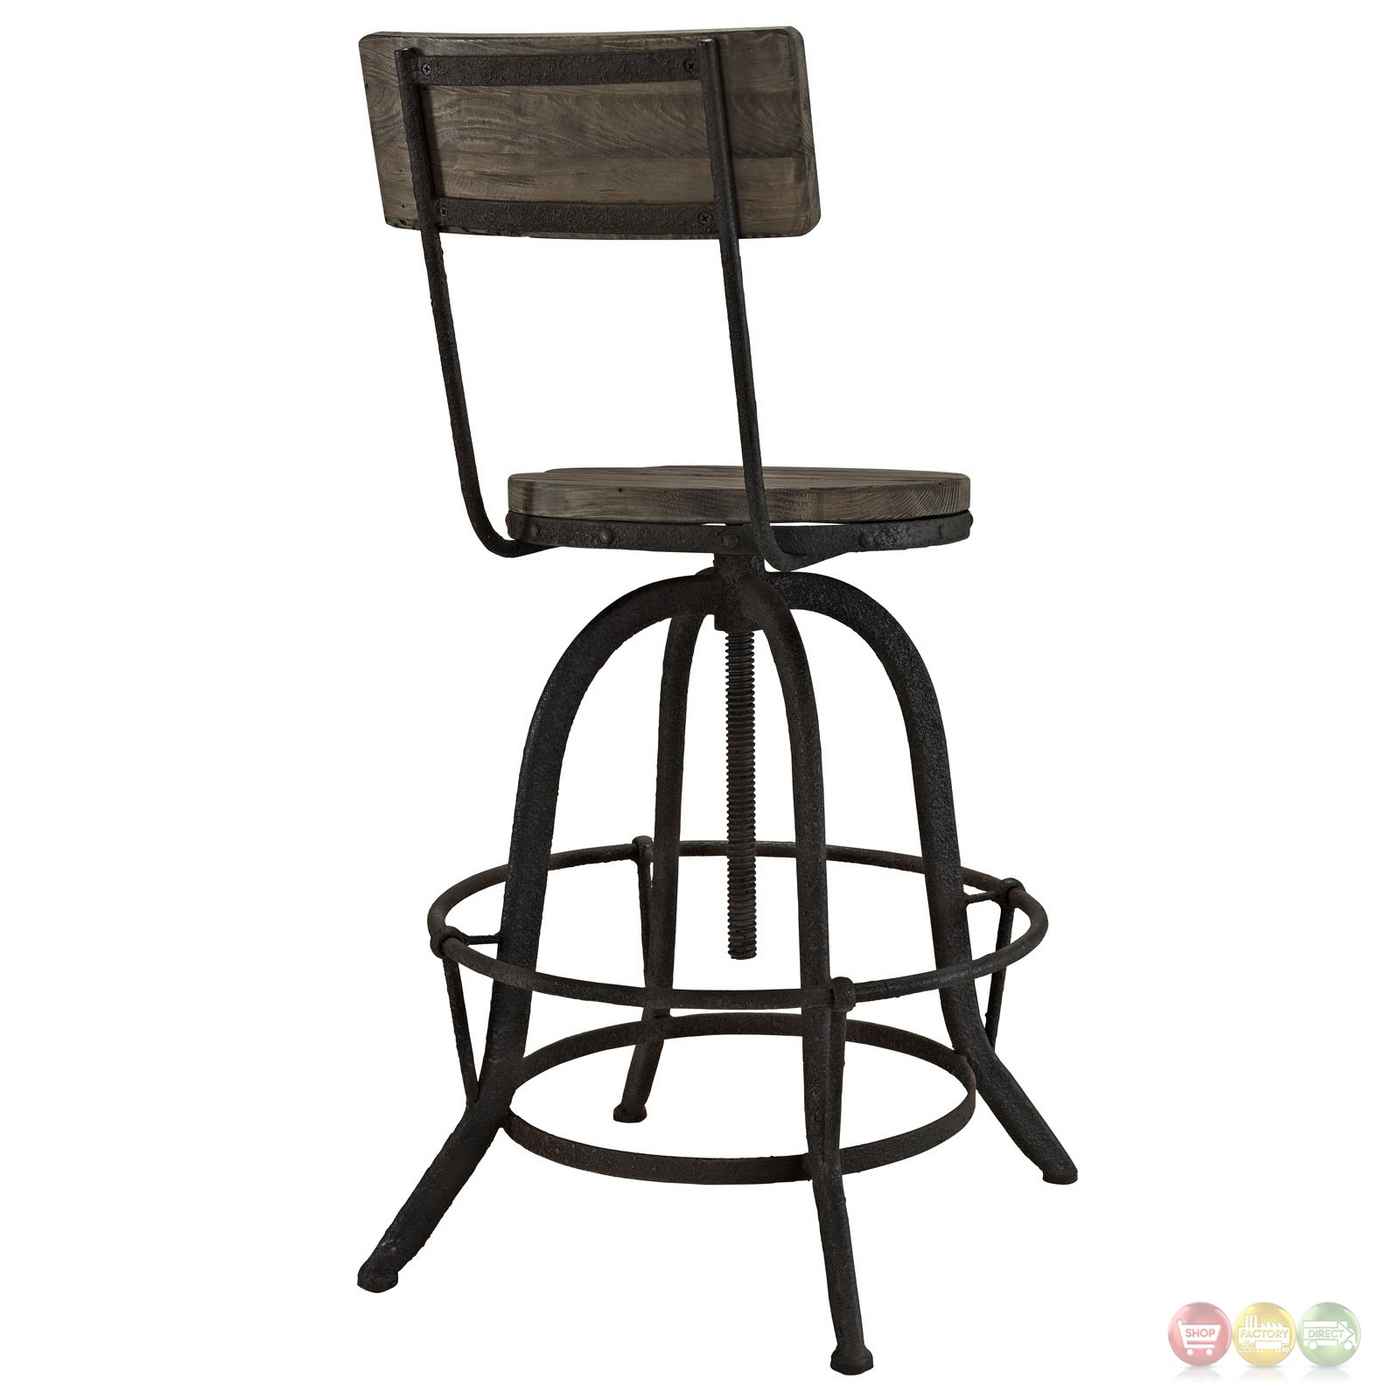 Procure Industrial Modern Wood Bar Stool With Cast Iron